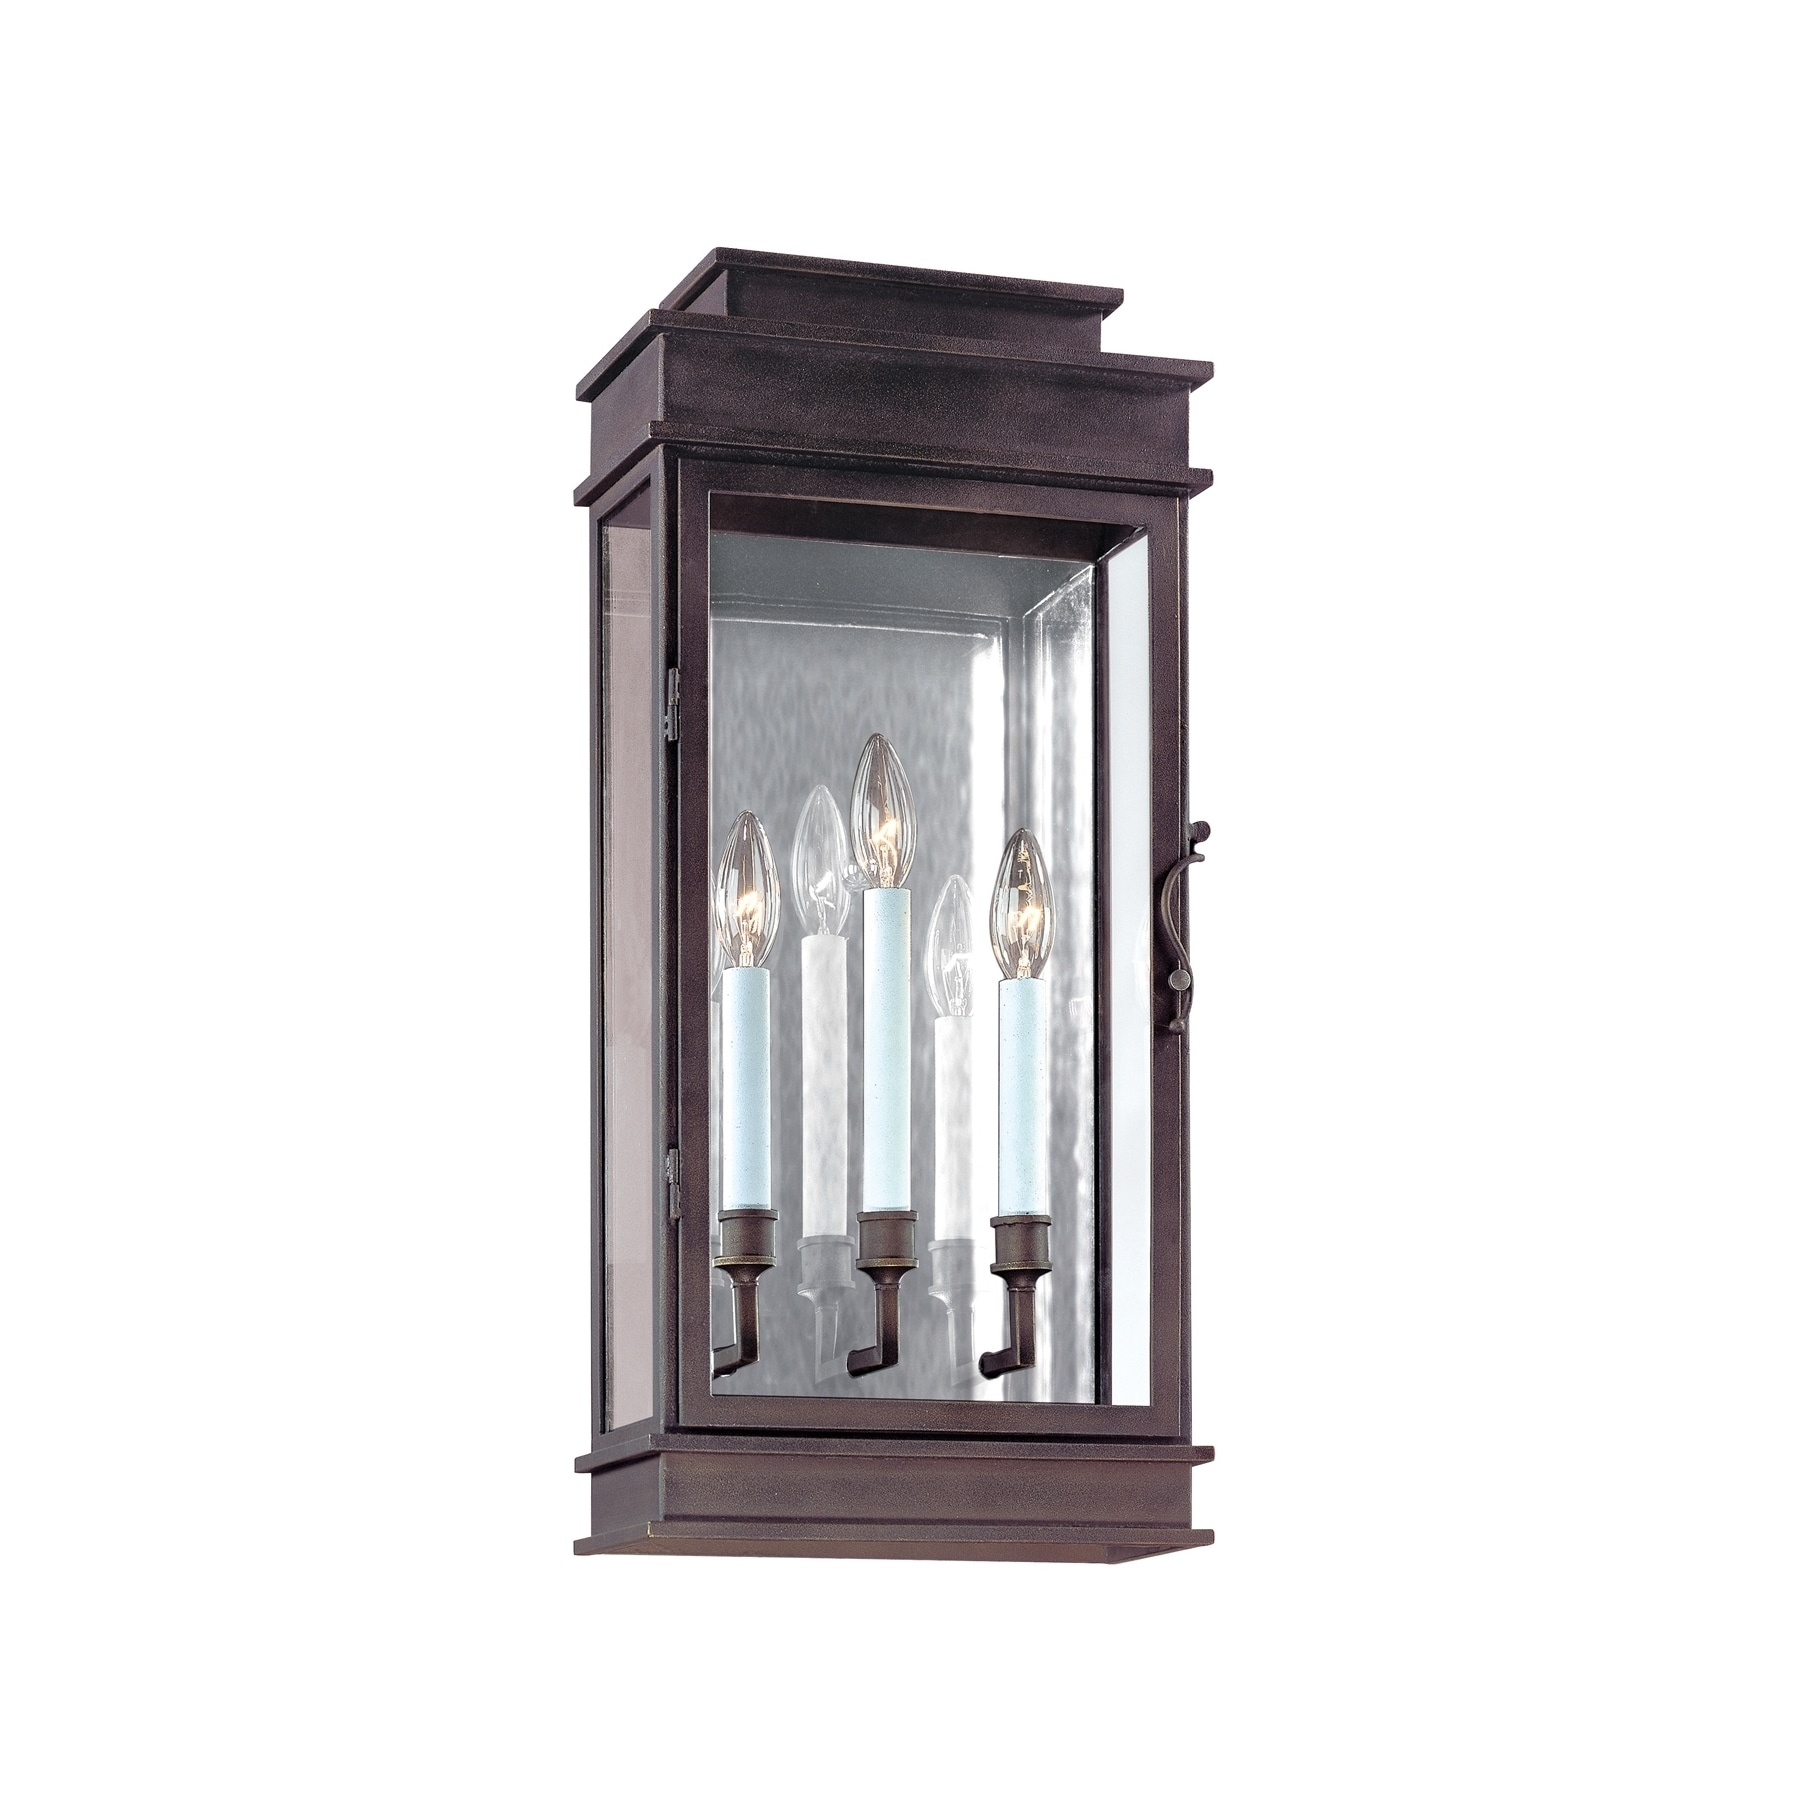 Troy Lighting Vintage 3-light Large Wall Sconce